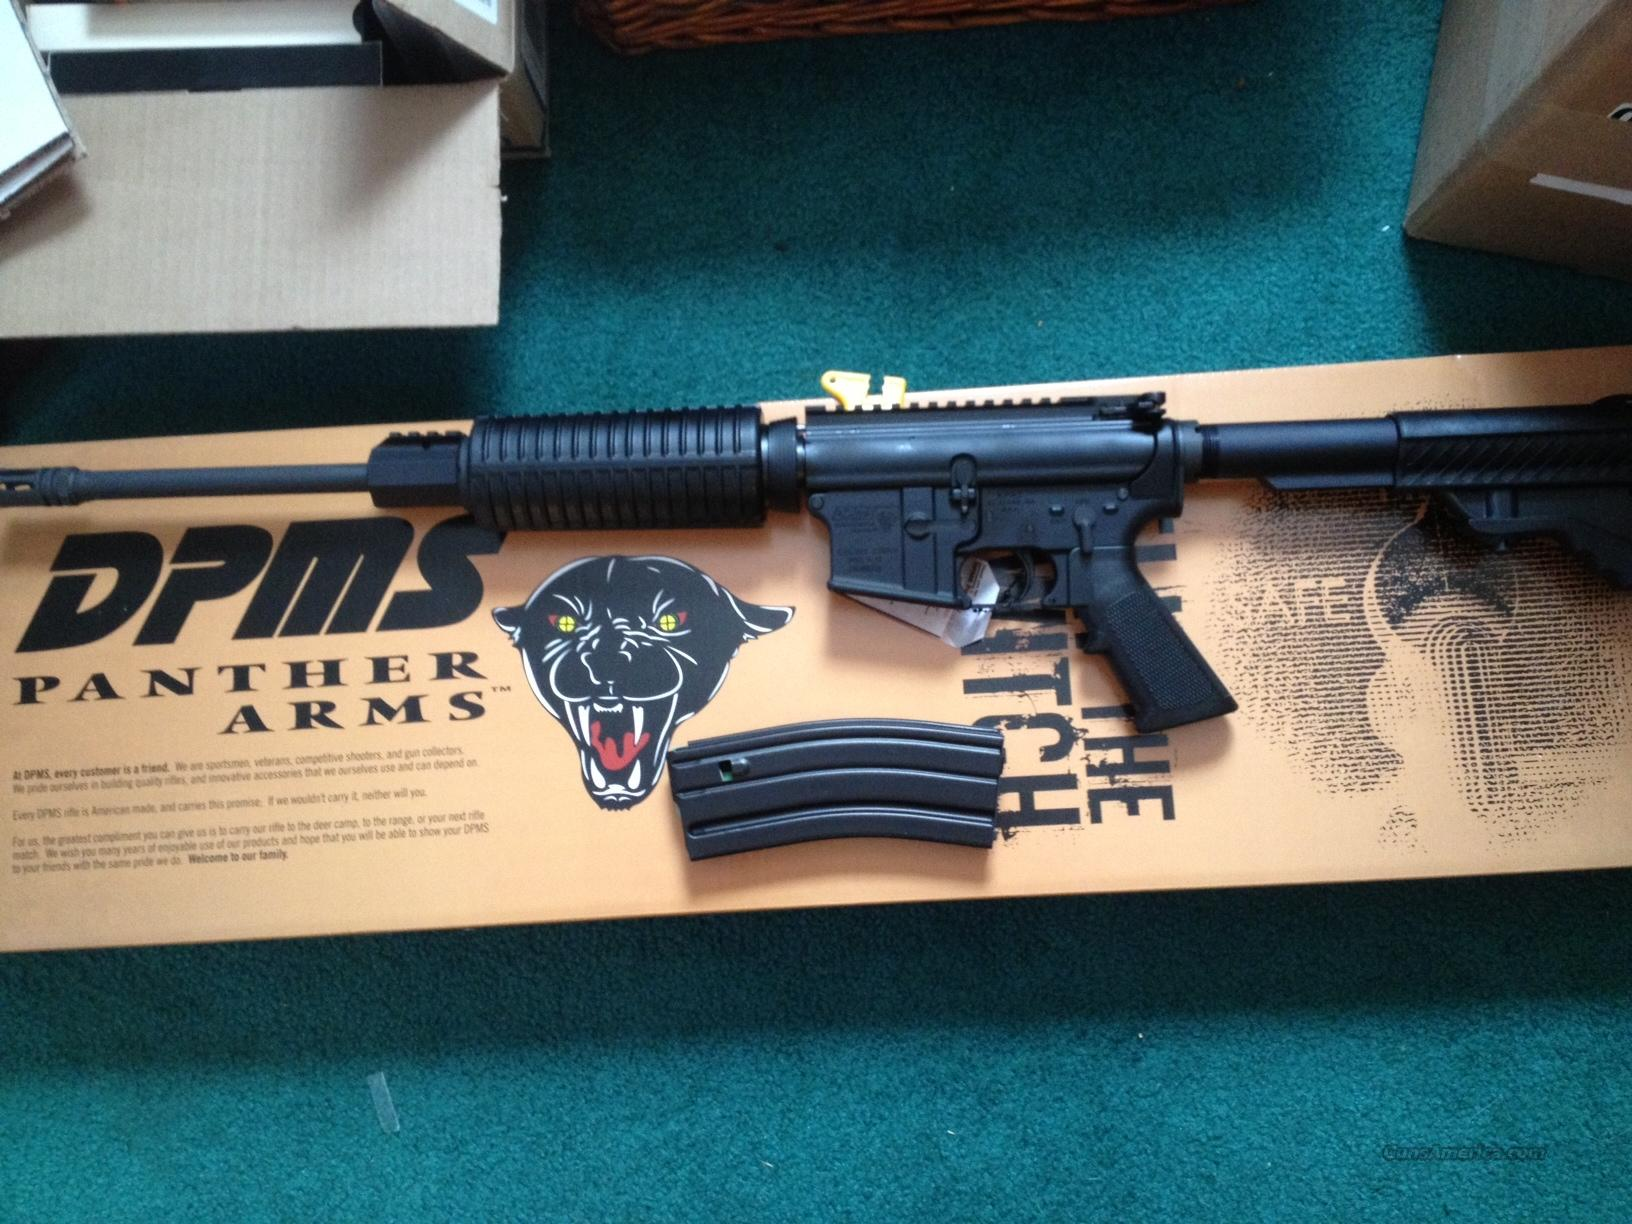 DPMS Panther Arms AR15 Sporticle NIB  Guns > Rifles > DPMS - Panther Arms > Complete Rifle